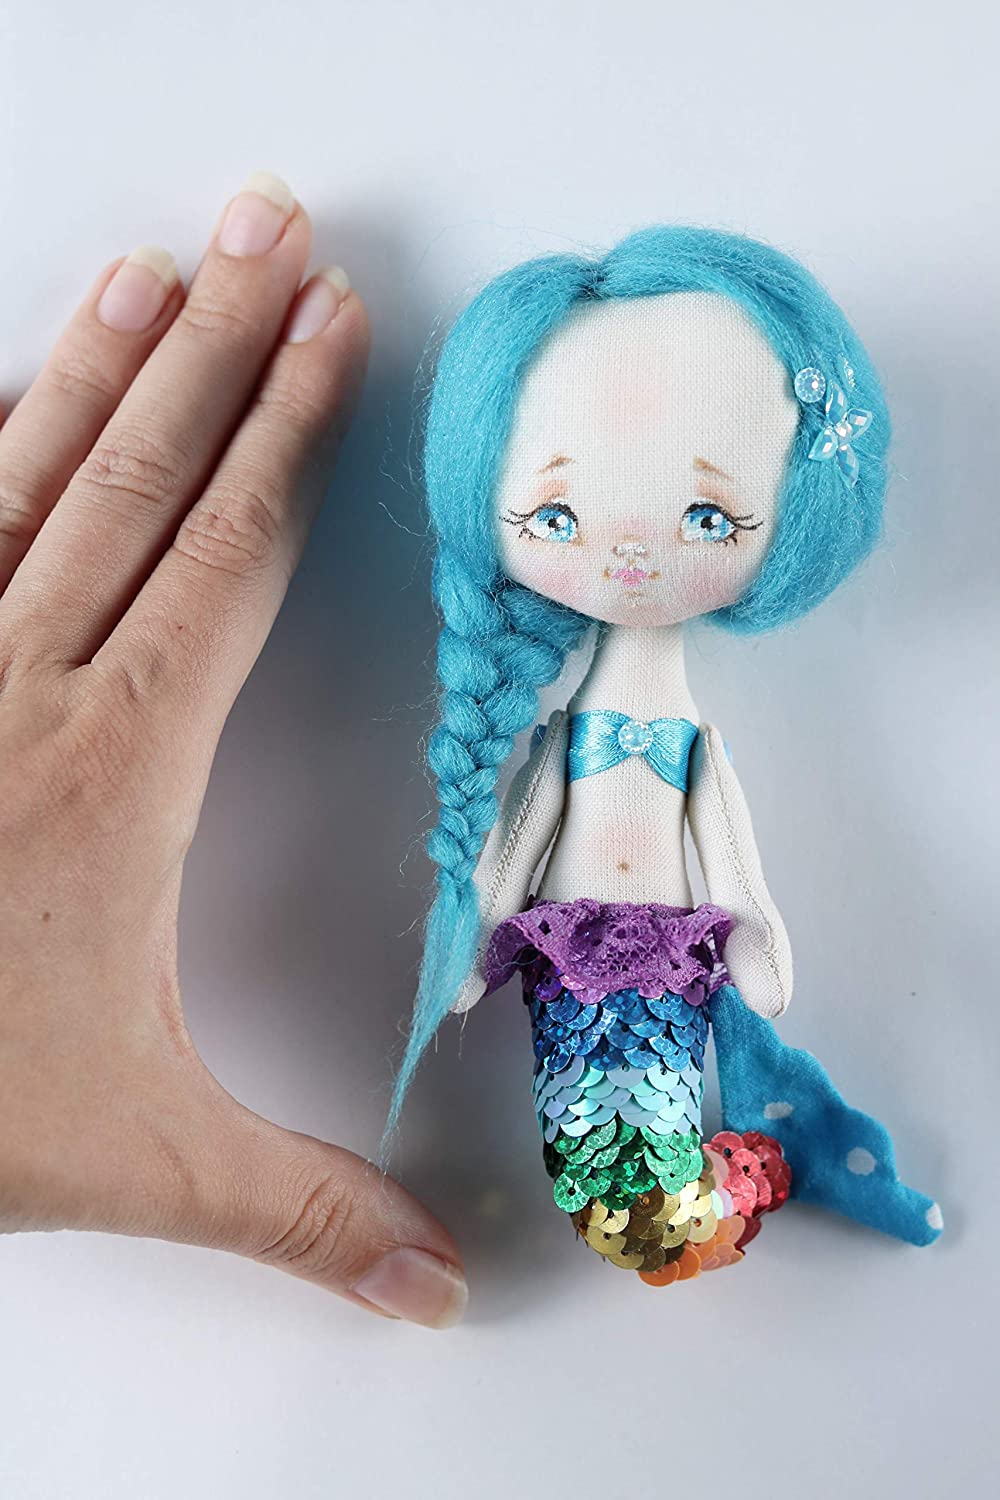 Textile doll Mermaid handmade Gift for the daughter Fabric doll Interior doll Art doll Rag doll Handmade doll Collectable Textile toy